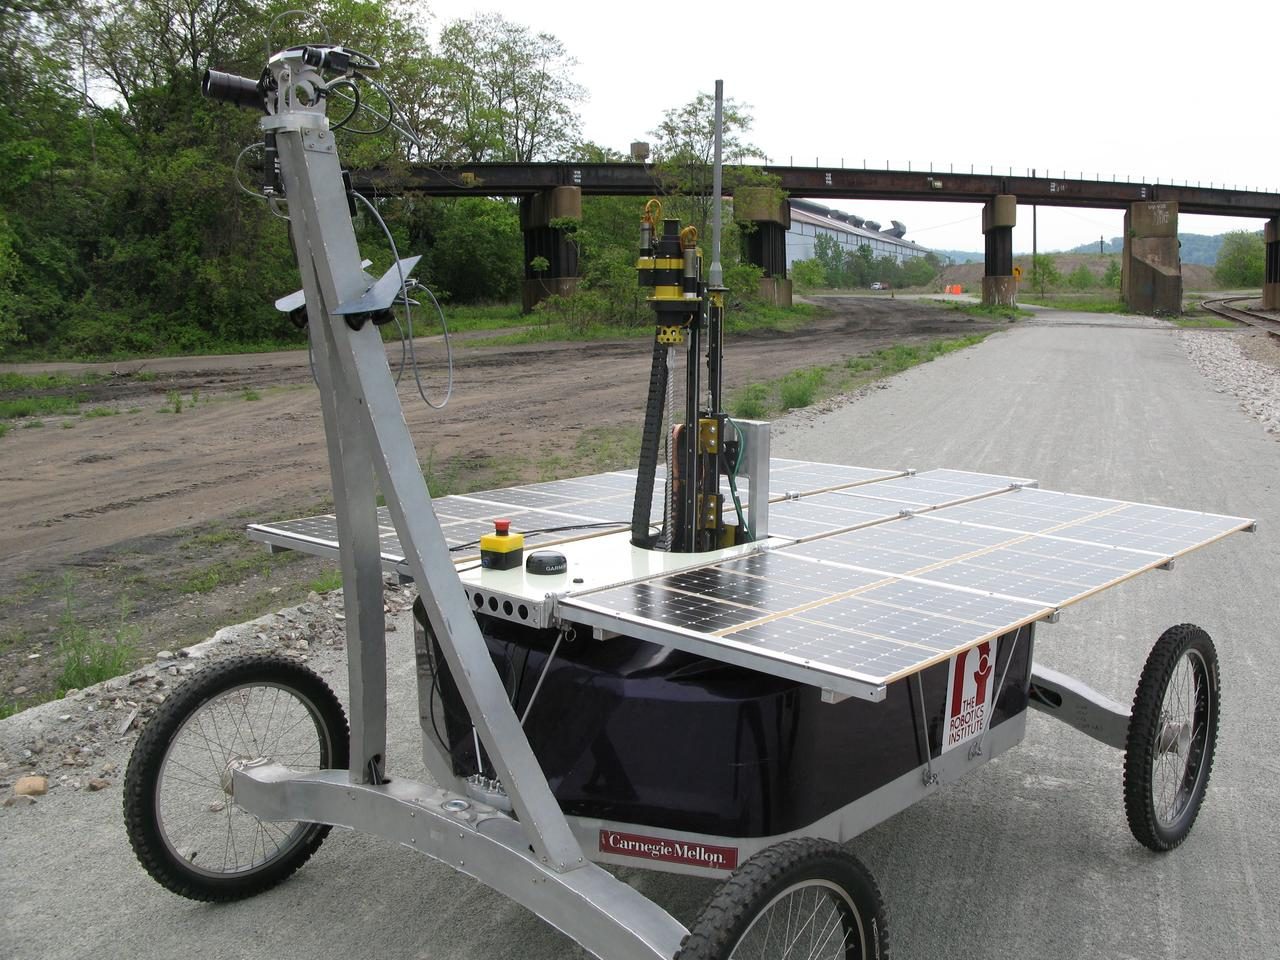 Robot Zoë is covered by a three sq m (32 sq ft) solar panel